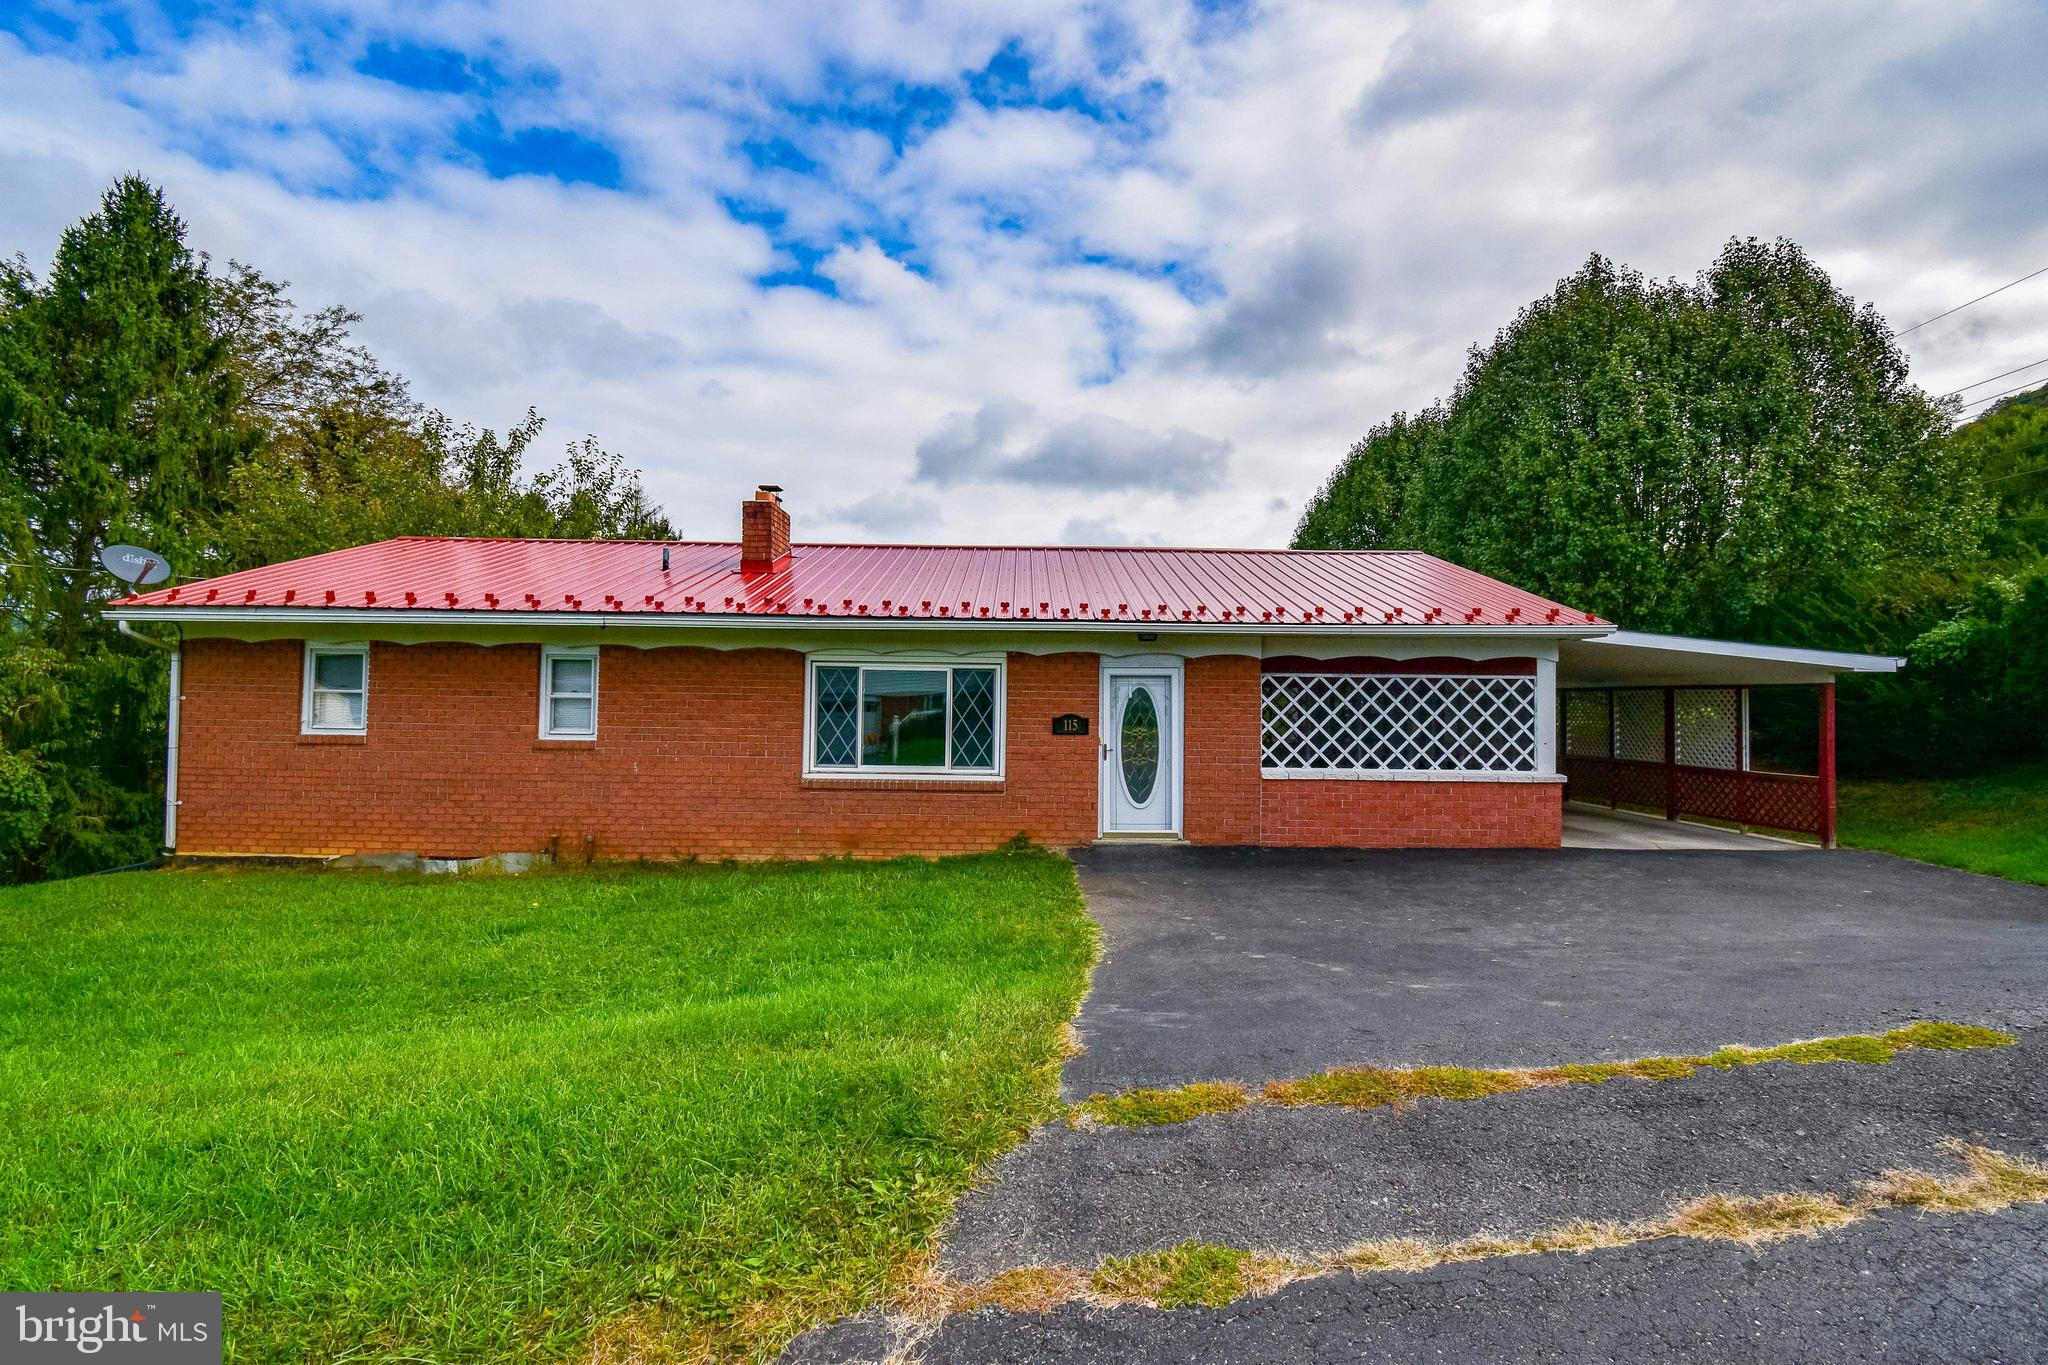 115 South Street, Ridgeley, WV 26753